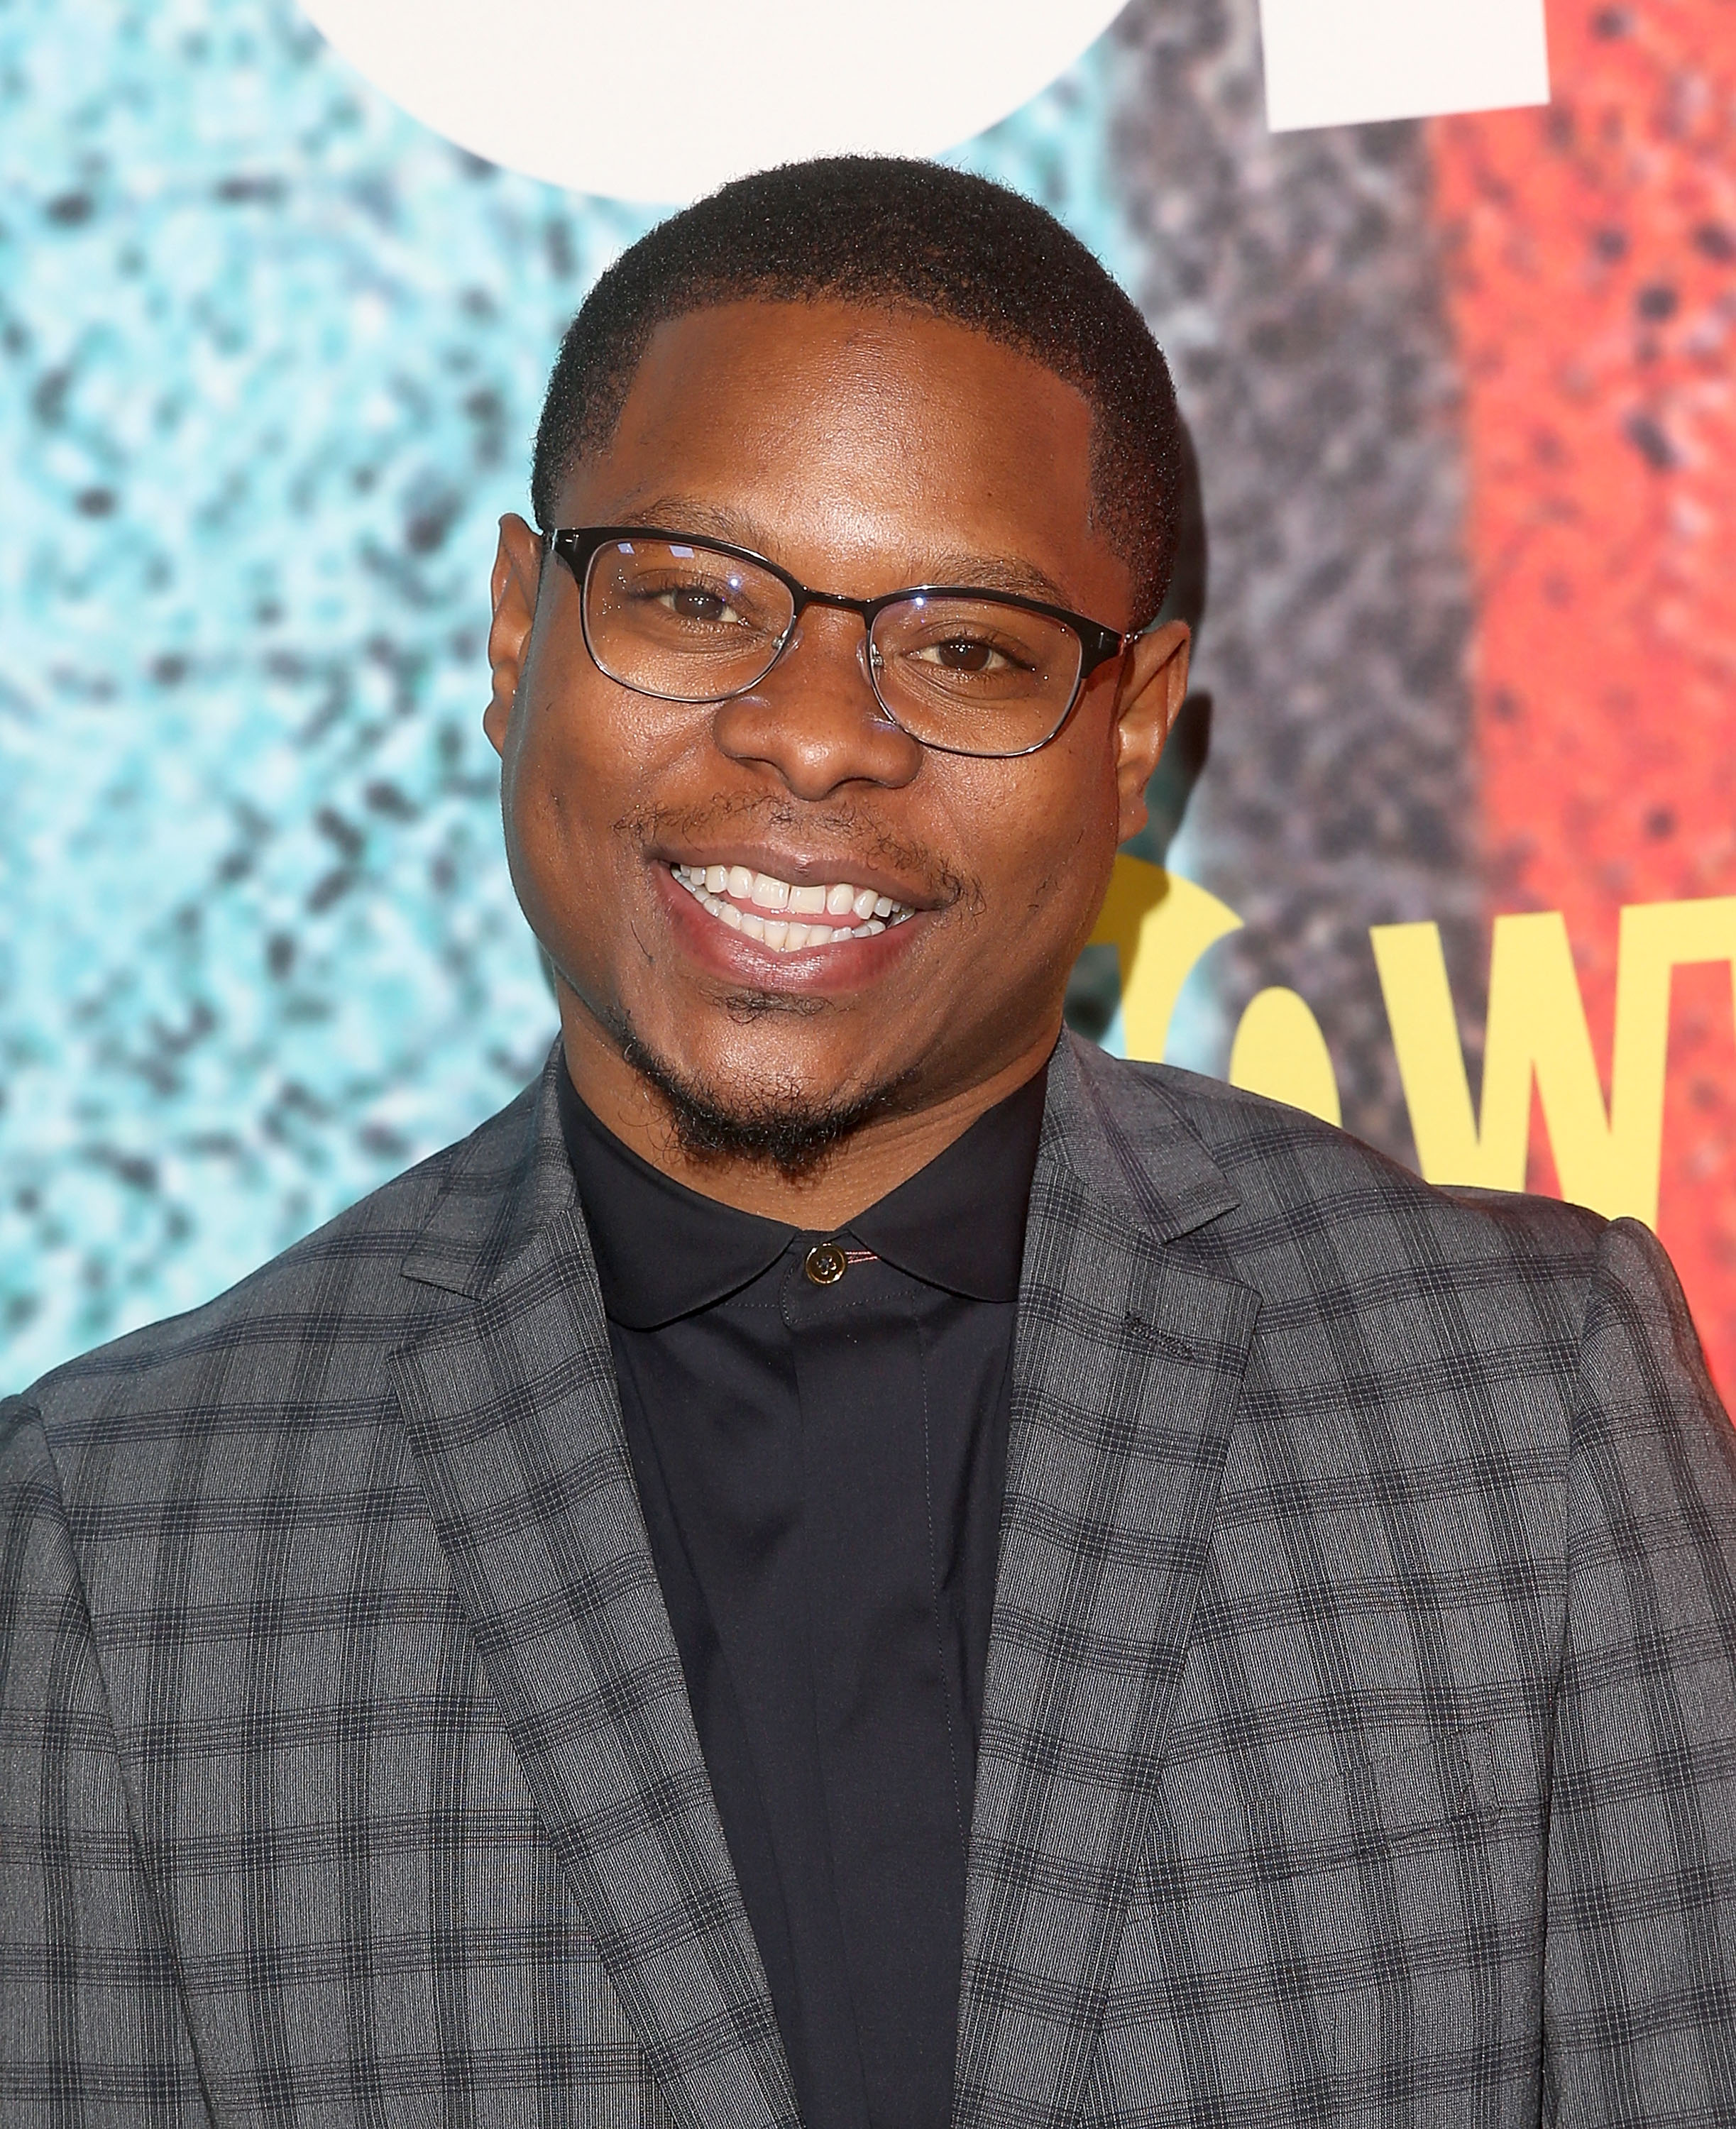 Jason Mitchell has enrolled in counseling and personal development after he was accused of misconduct earlier this year, causing him to lose two jobs.